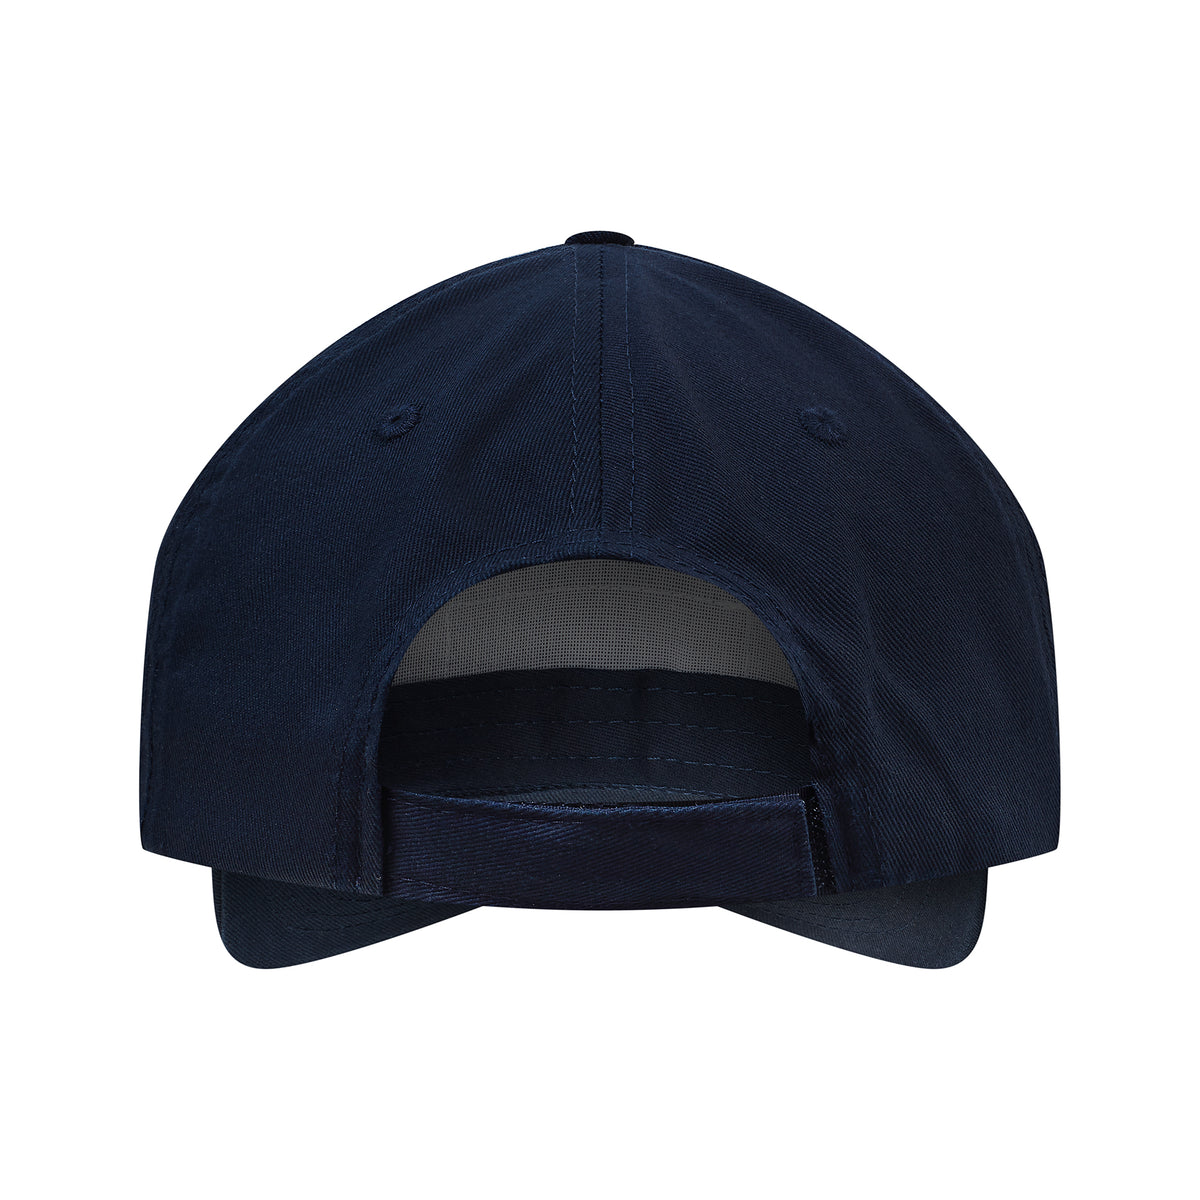 Signature 5-panel cap - Navy